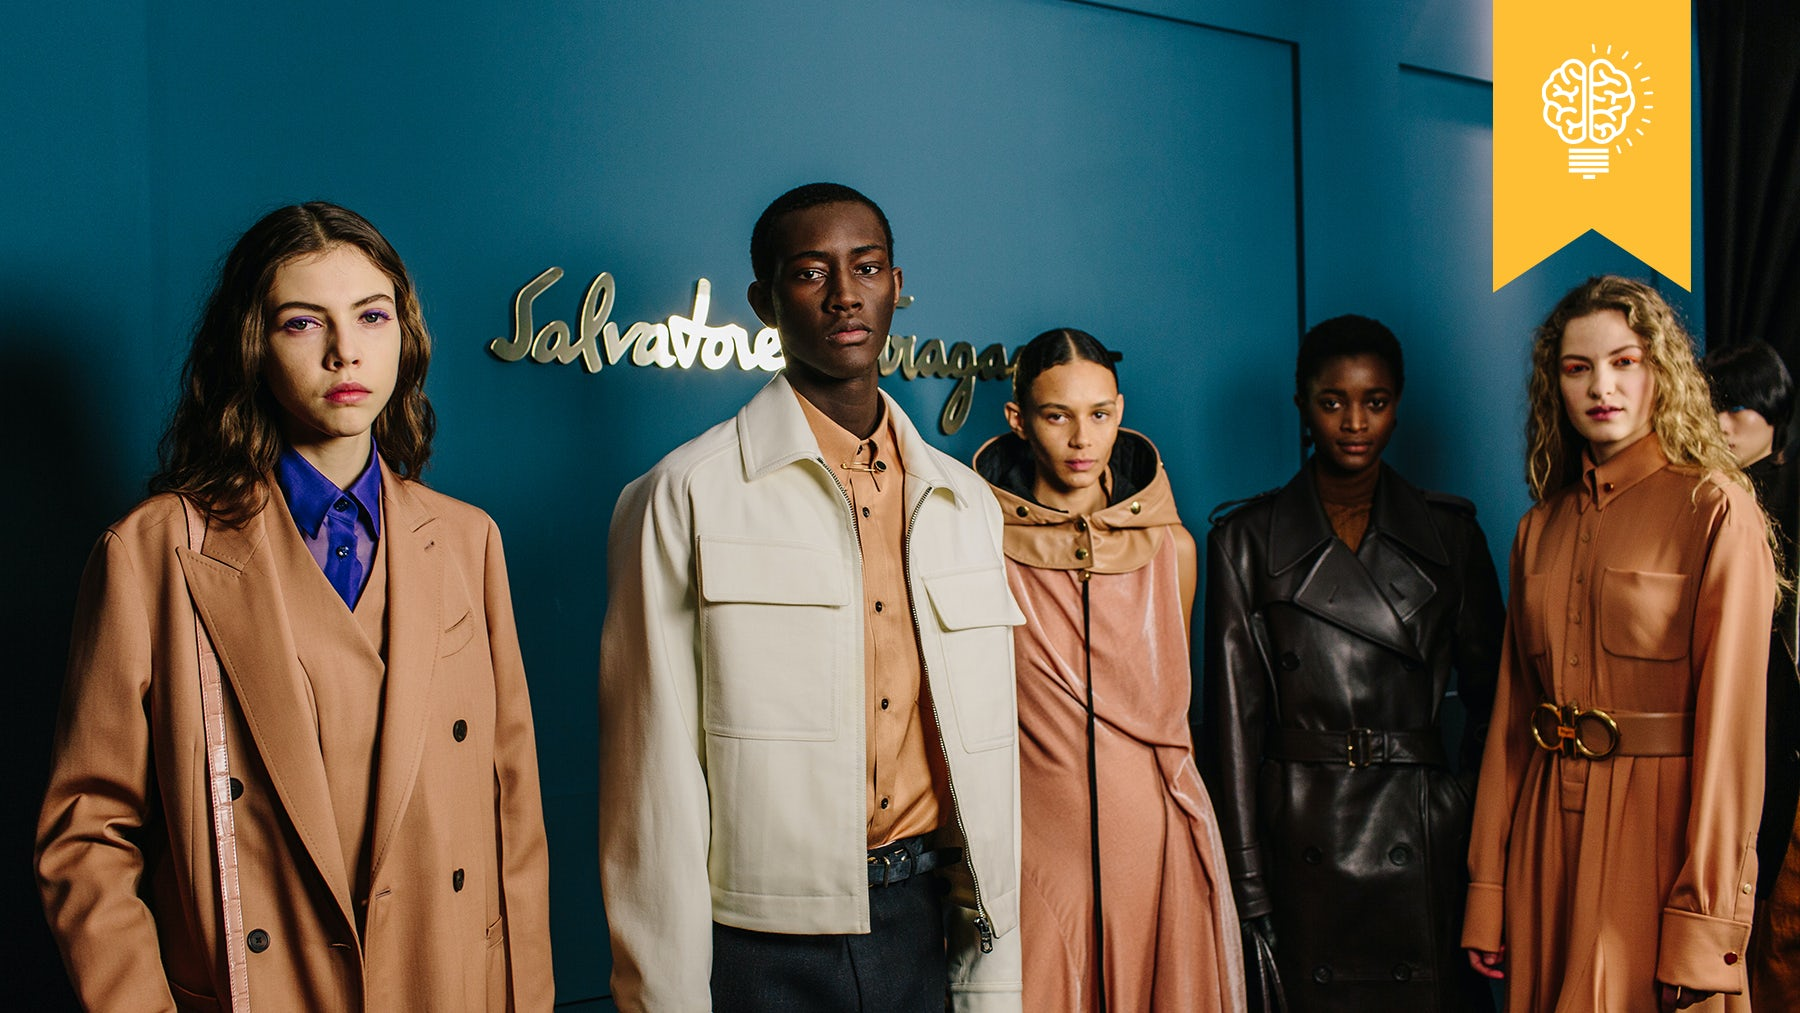 Salvatore Ferragamo Autumn/Winter 2018 | Source: Salvatore Ferragamo